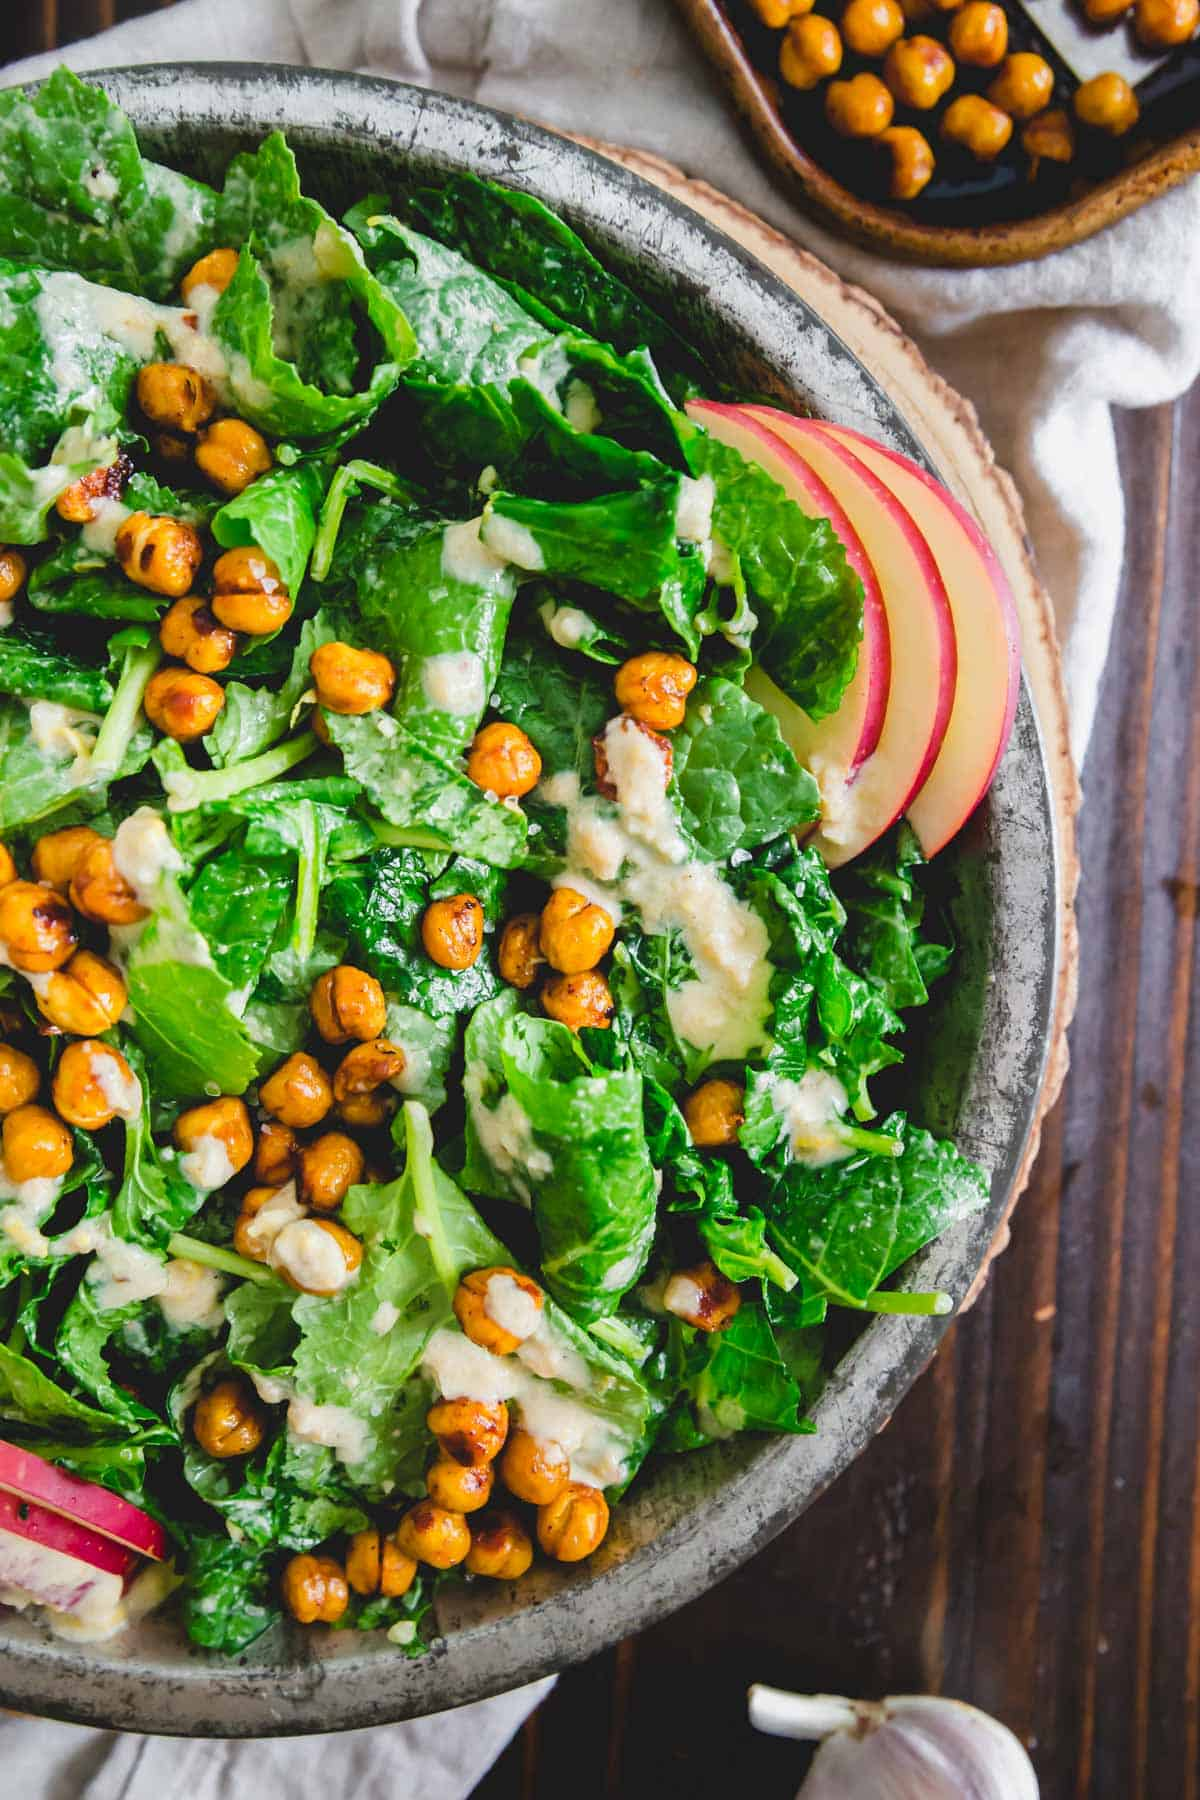 Thinly sliced apples, roasted chickpeas and a creamy tahini dressing make this the best baby kale salad recipe.